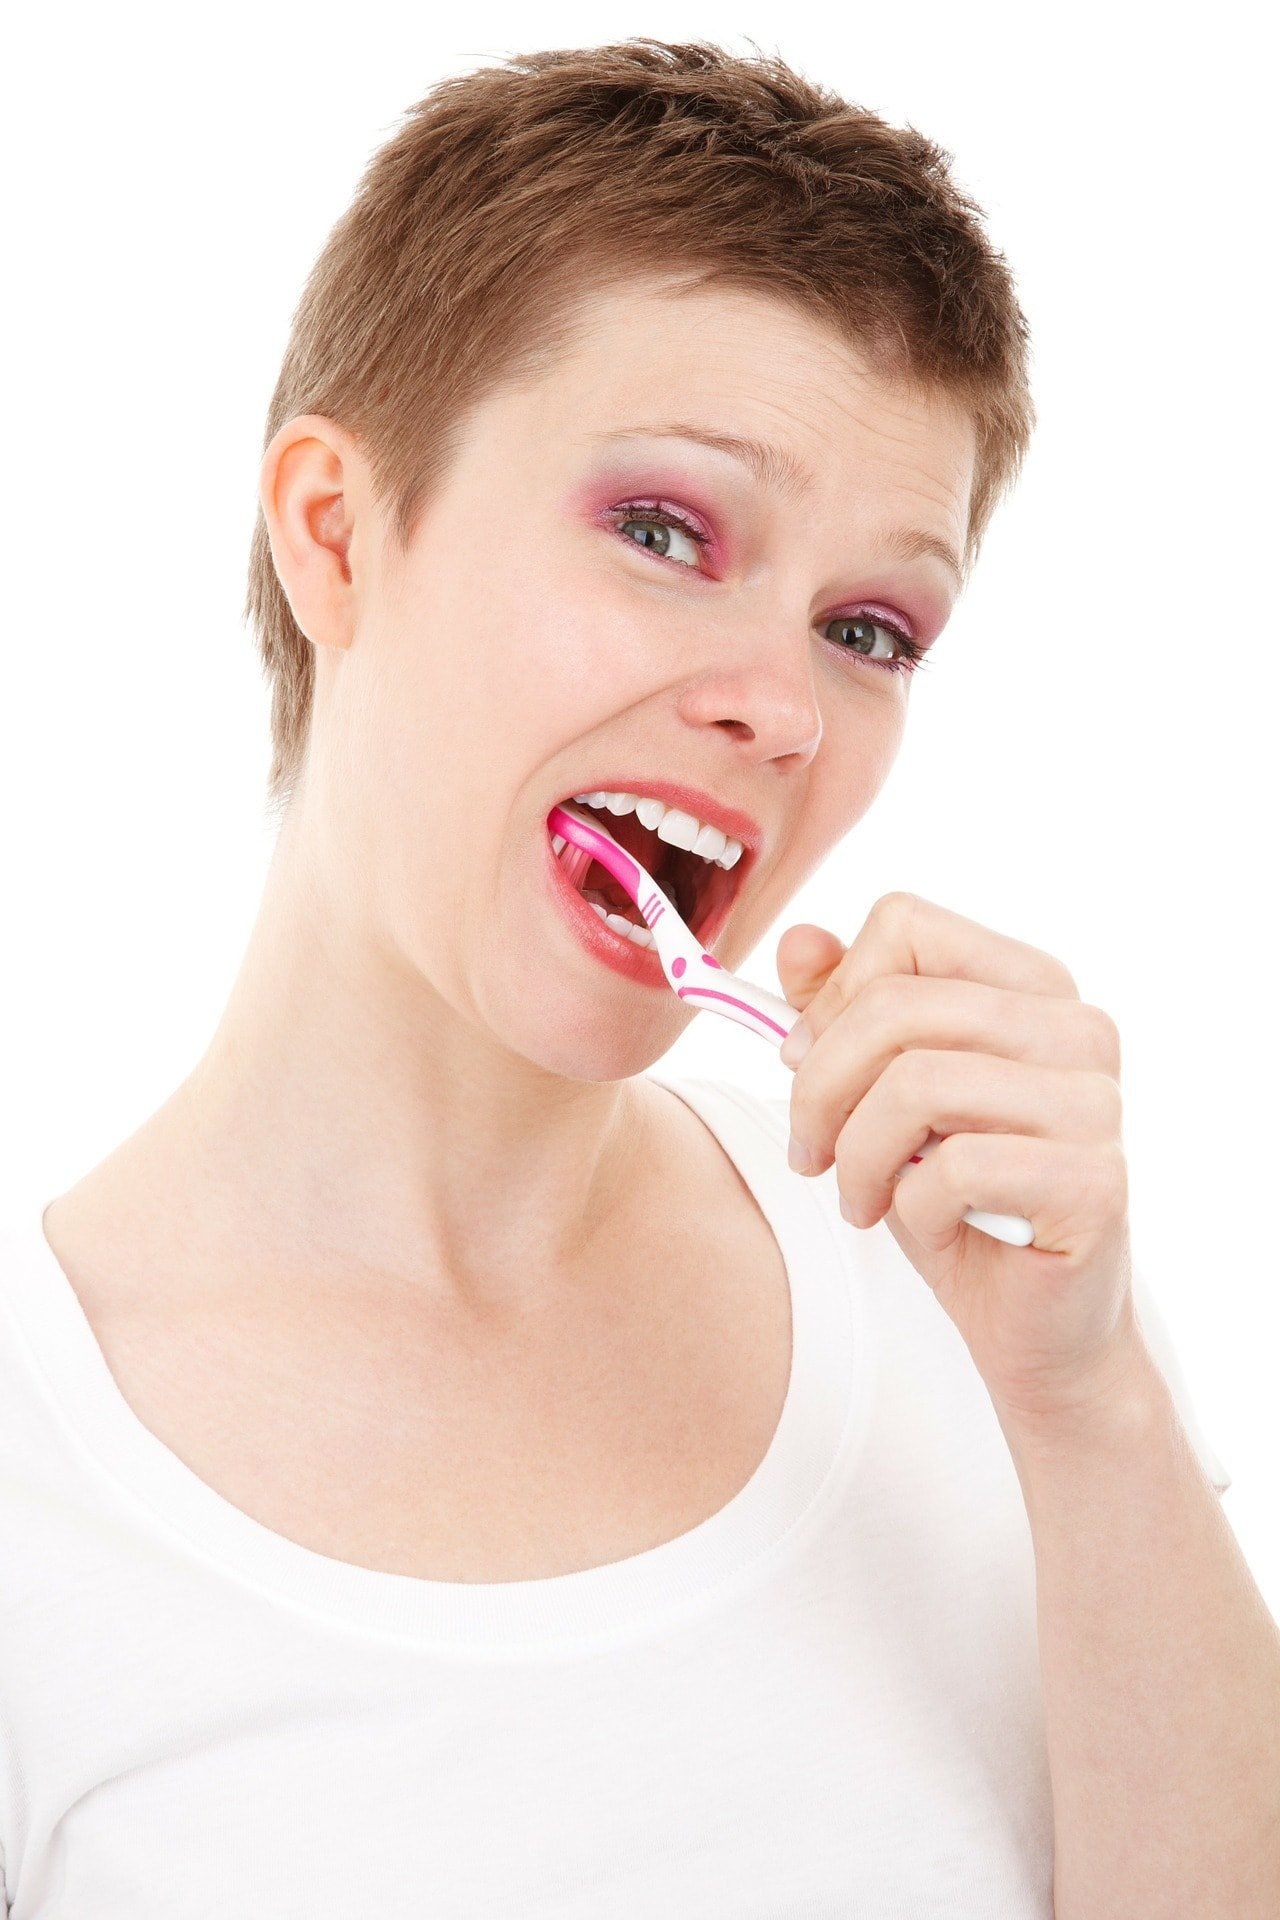 Fix Yellow Teeth